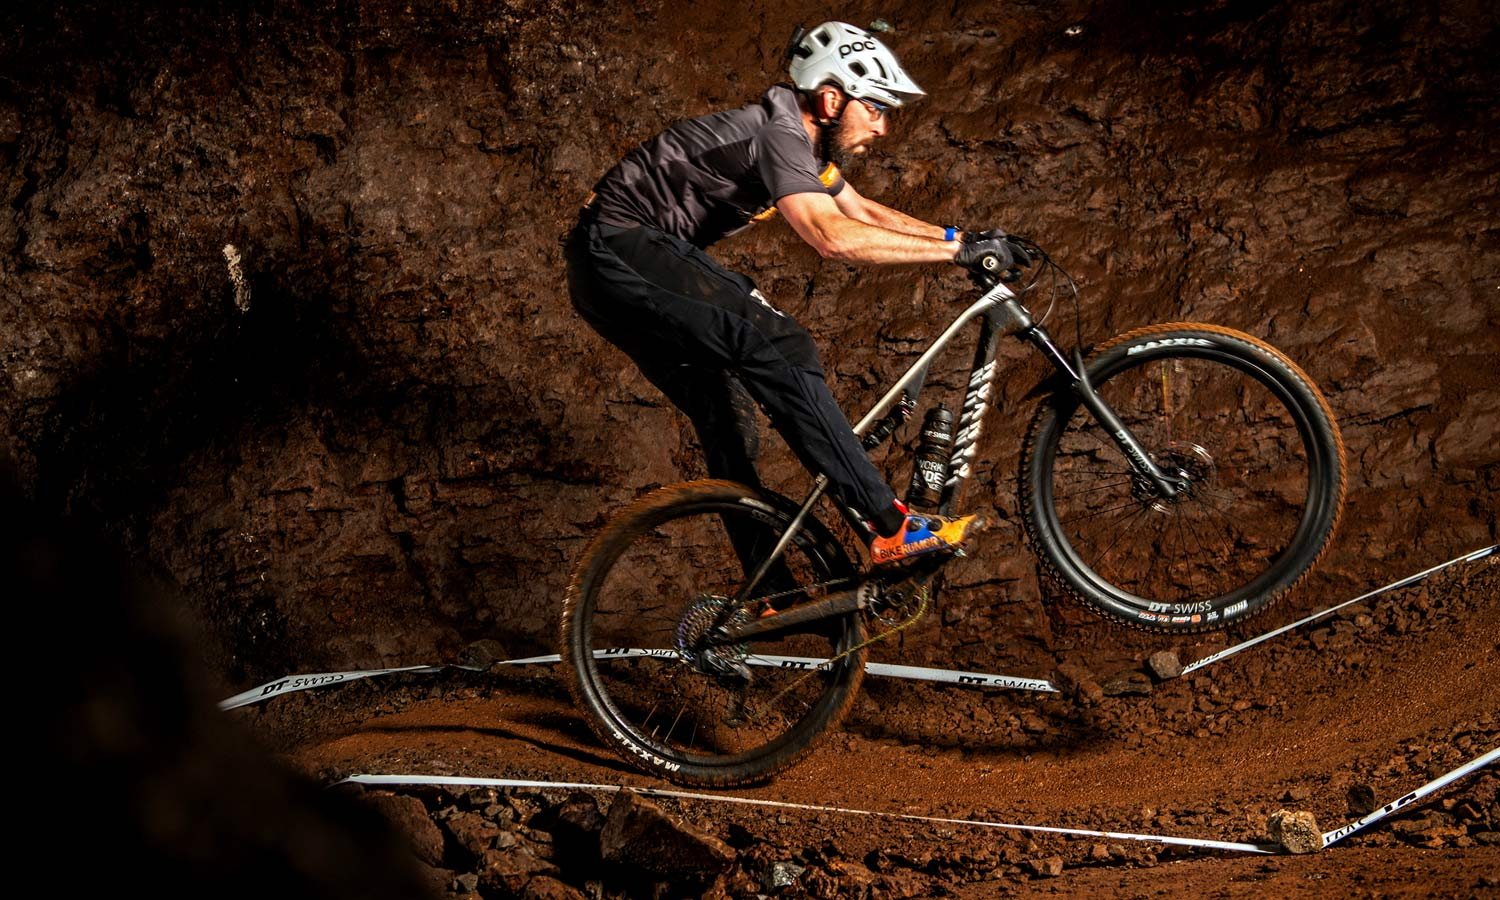 2020 Canyon Lux CF SLX 9 DT Swiss 232 Race Limited edition, special Olympic race edition carbon full suspension XC mountain bike